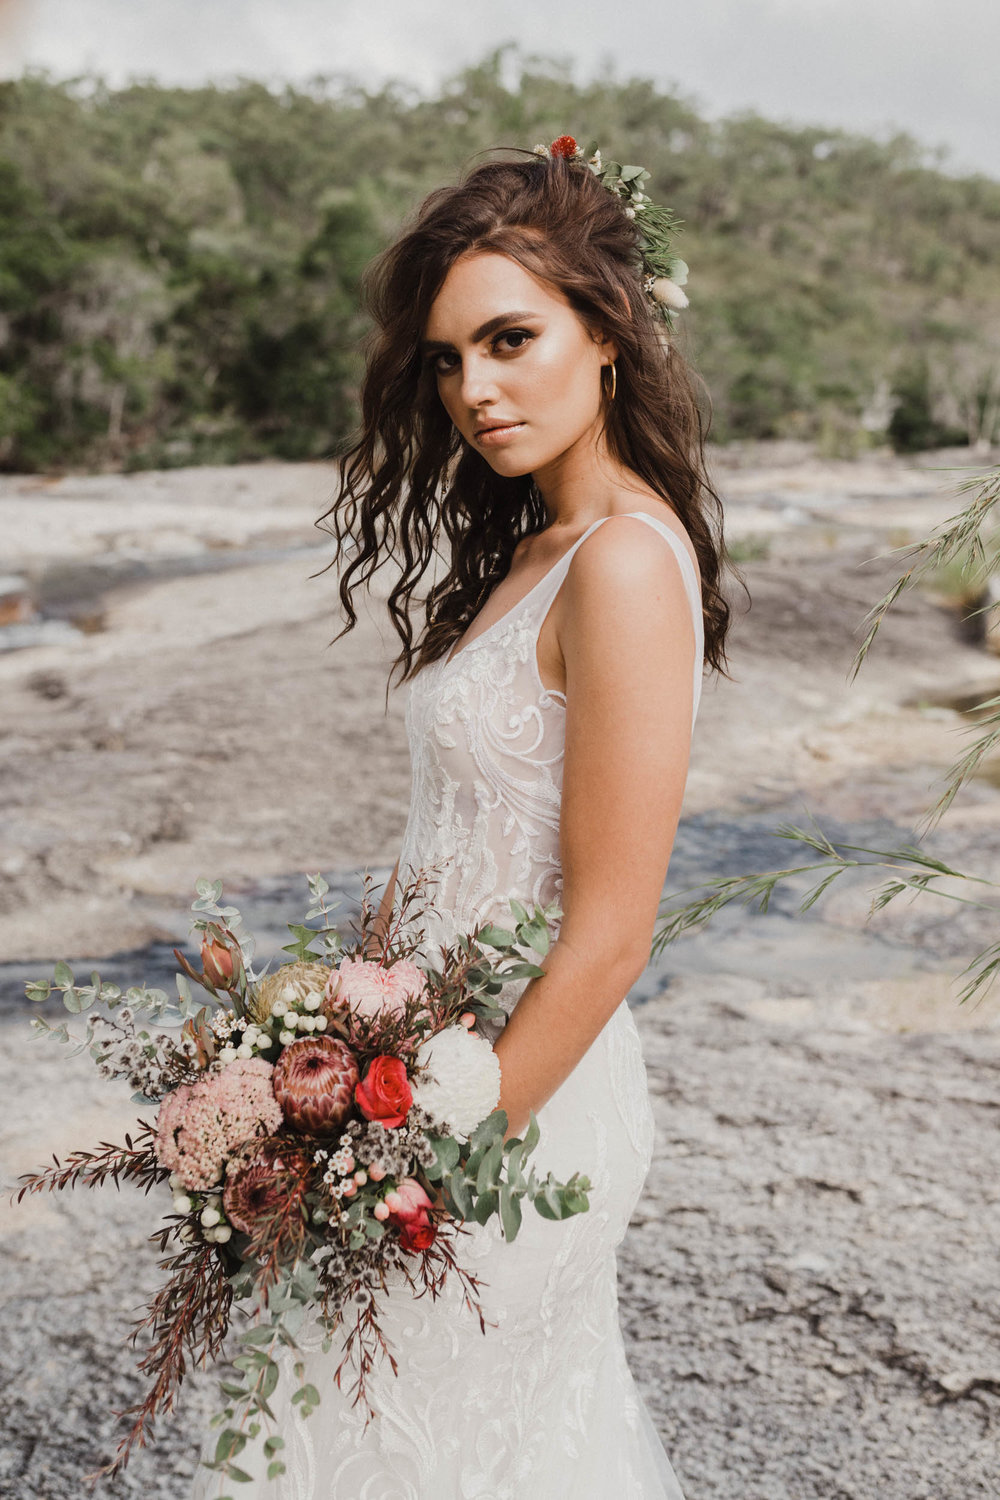 The Raw Photographer - Cairns Wedding Photographer - Brides Styled Shoot - Dress Jonovia Bridal - Hair Makeup Ideas-4.jpg